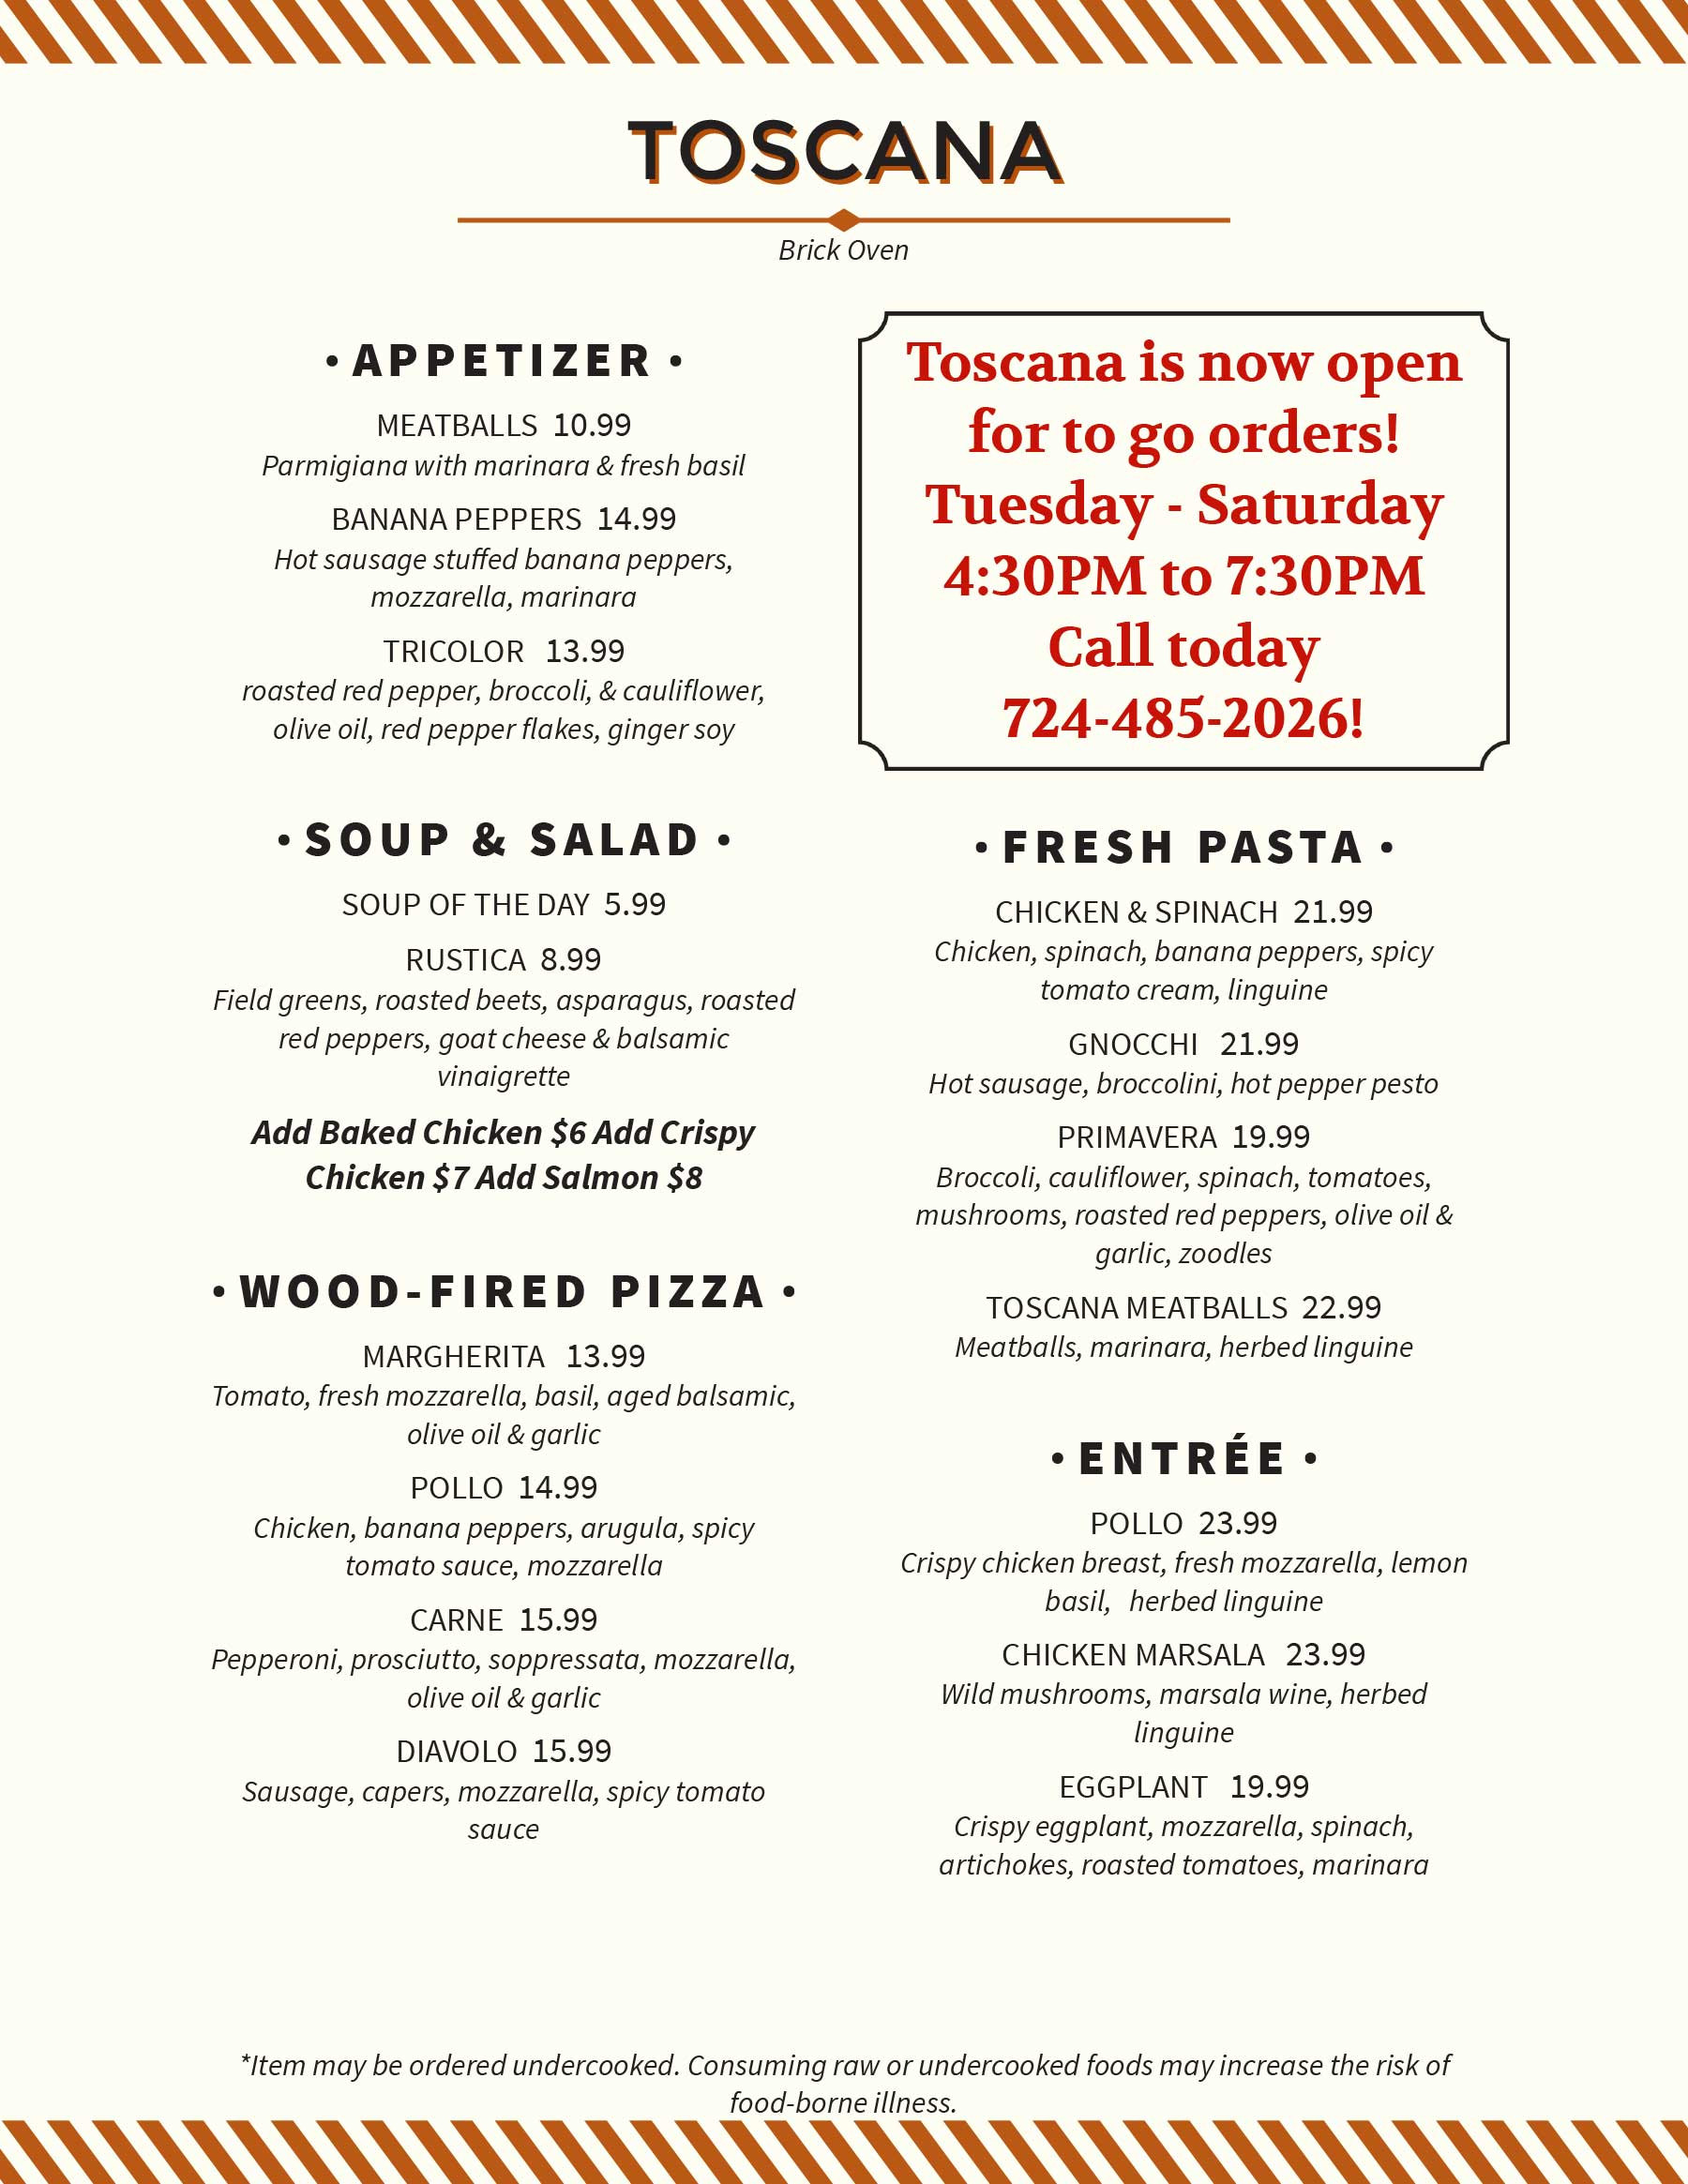 Toscana Brick Oven To-Go Menu